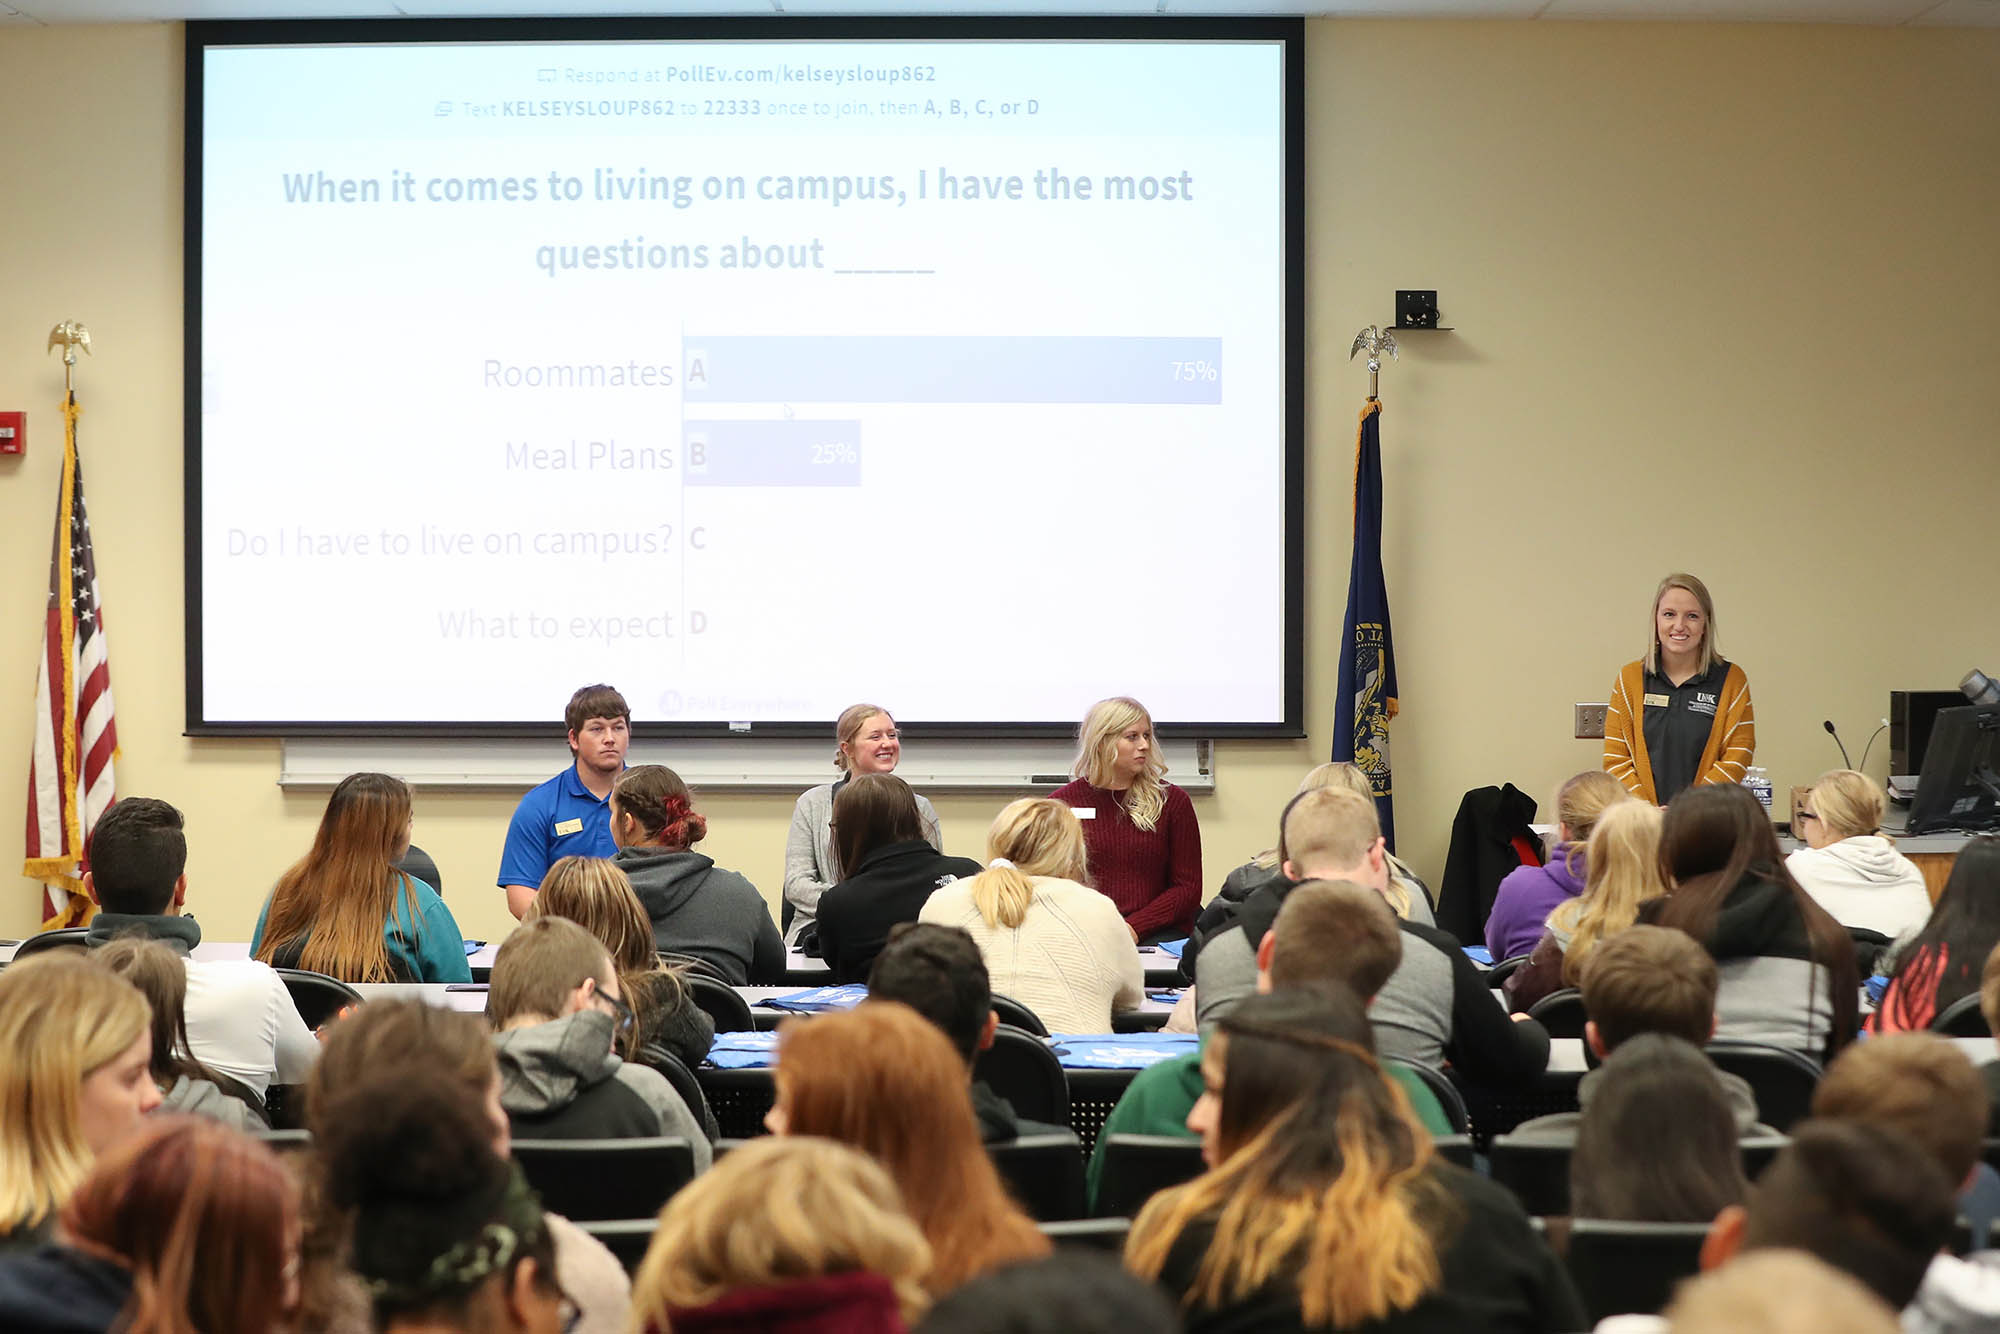 About 125 students from Grand Island Senior High School visited UNK on Wednesday to learn about local career opportunities and how UNK can help them reach their goals. The event, hosted by UNK's College of Business and Technology, included business and student panels and a campus tour. (Photos by Corbey R. Dorsey, UNK Communications)